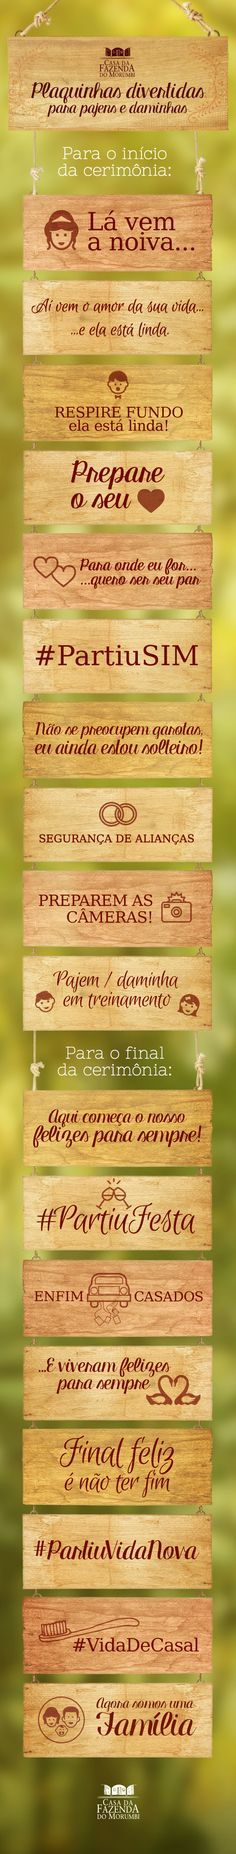 #CasadaFazendadoMorumbi #Plaquinhas #Pajém #Daminha #Casamento #Inspiração Wedding Tips, Wedding Couples, Wedding Details, Our Wedding, Wedding Venues, Wedding Planning, Dream Wedding, Party Decoration, Wedding Decorations